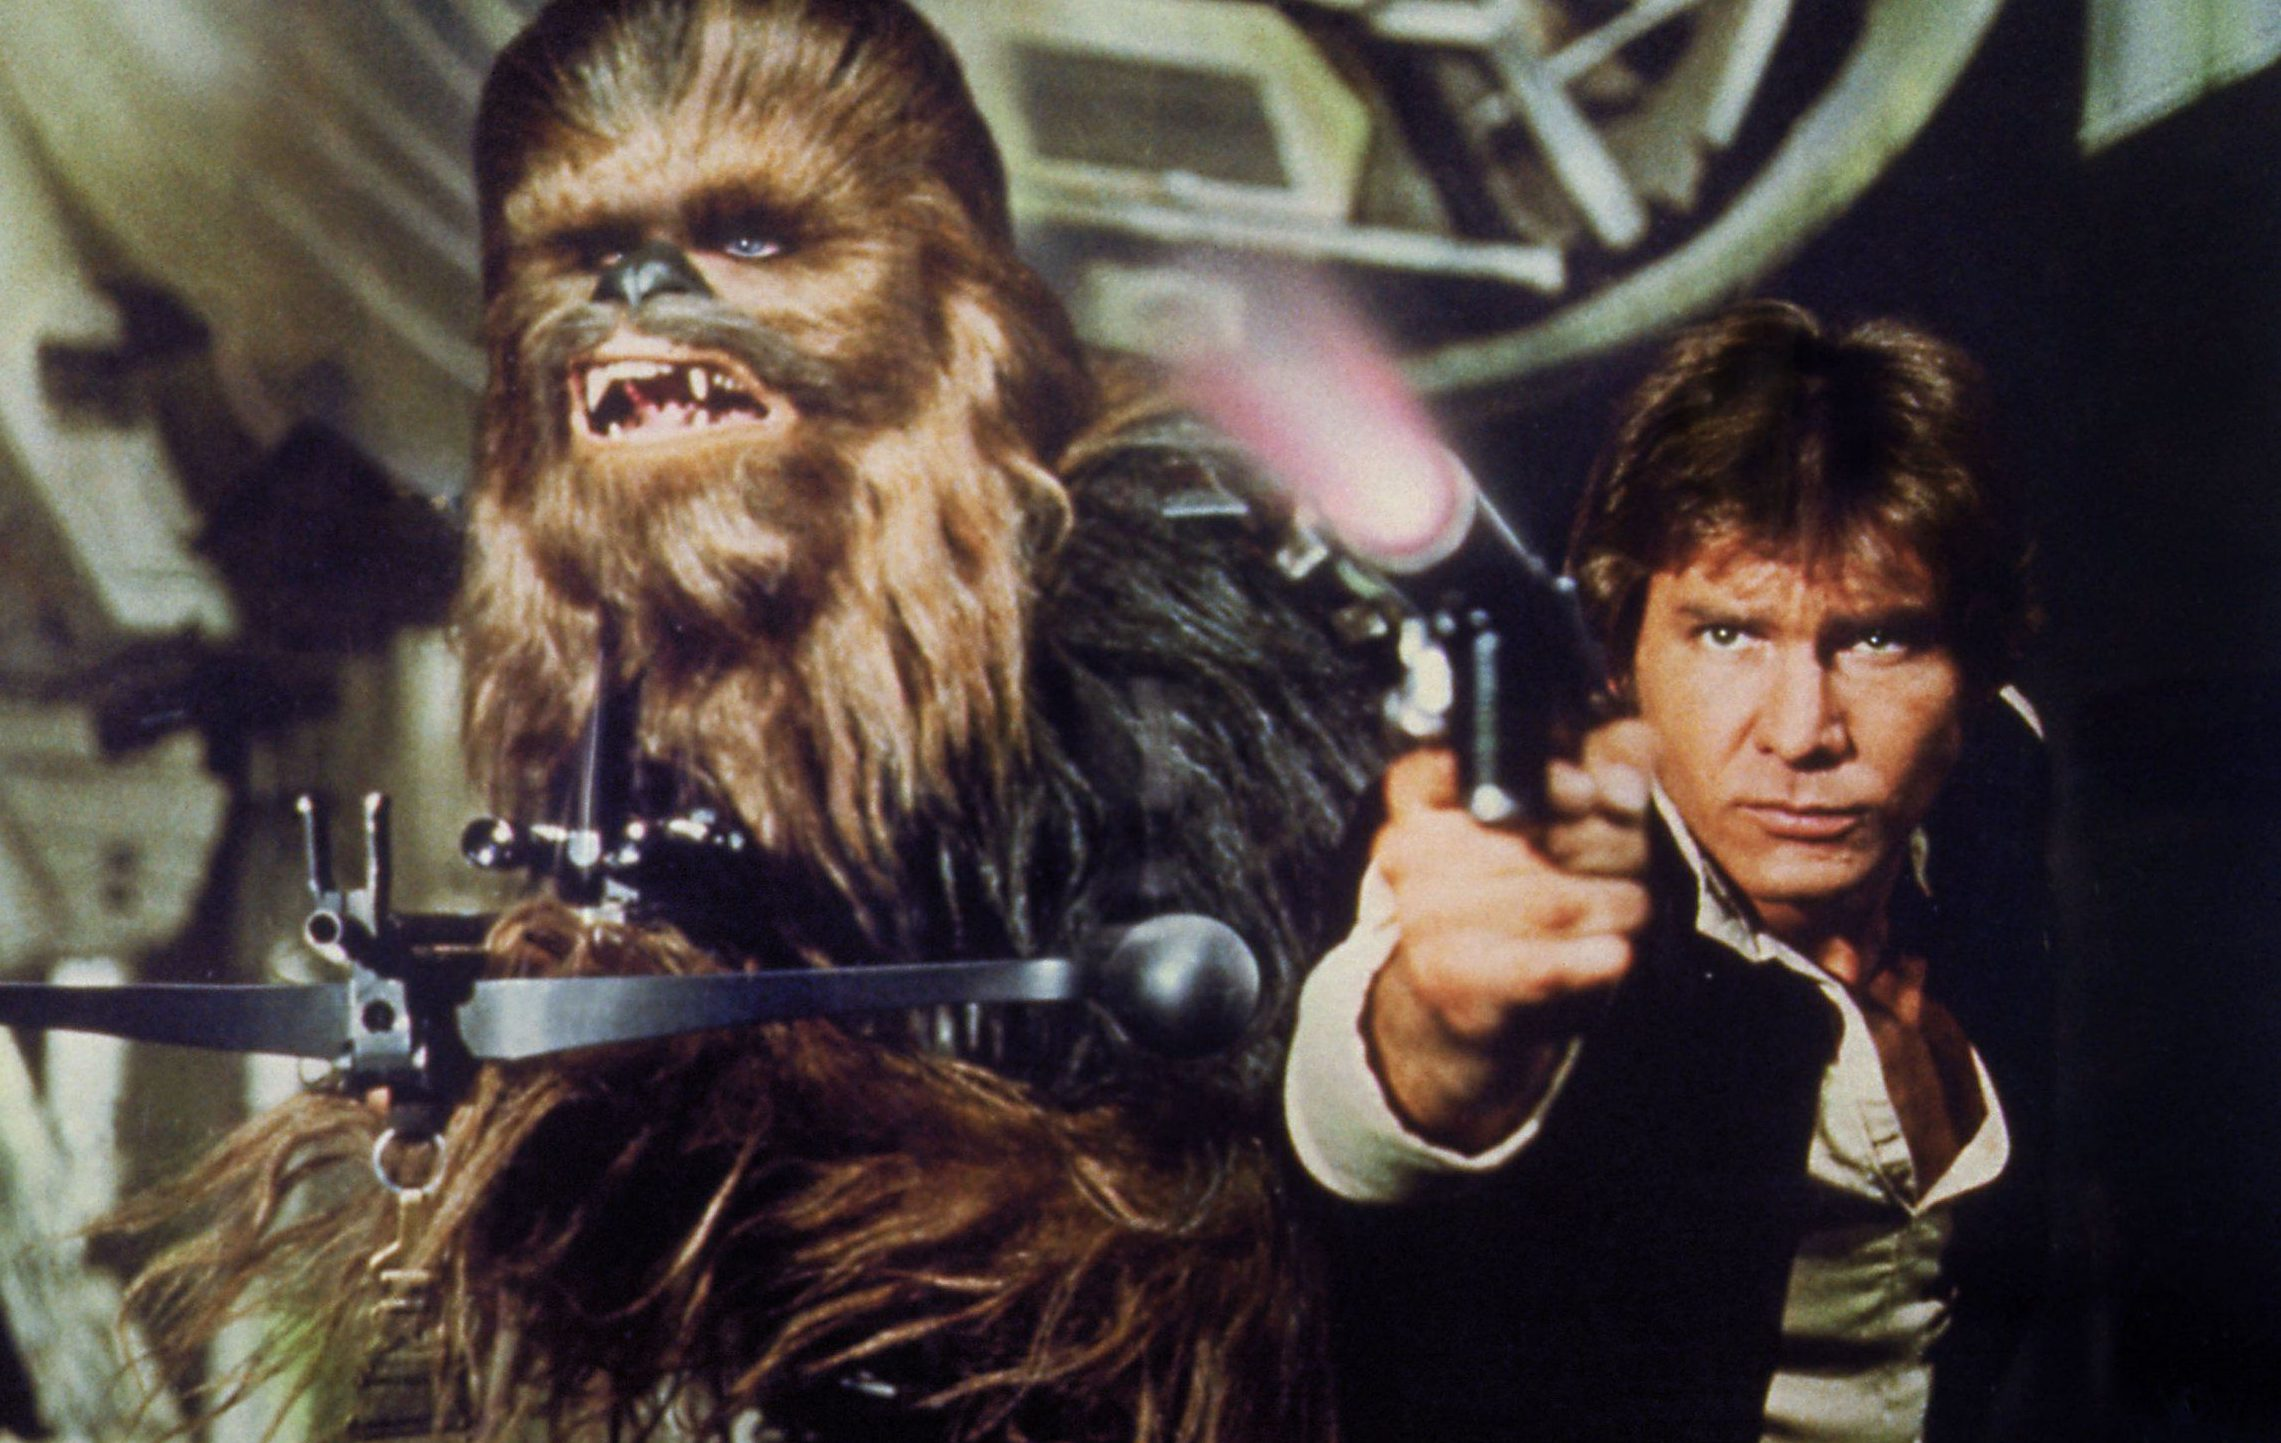 Ron Howard and Joe Johnston to replace Han Solo directors fired following 'creative differences with Star Wars screenwriter'